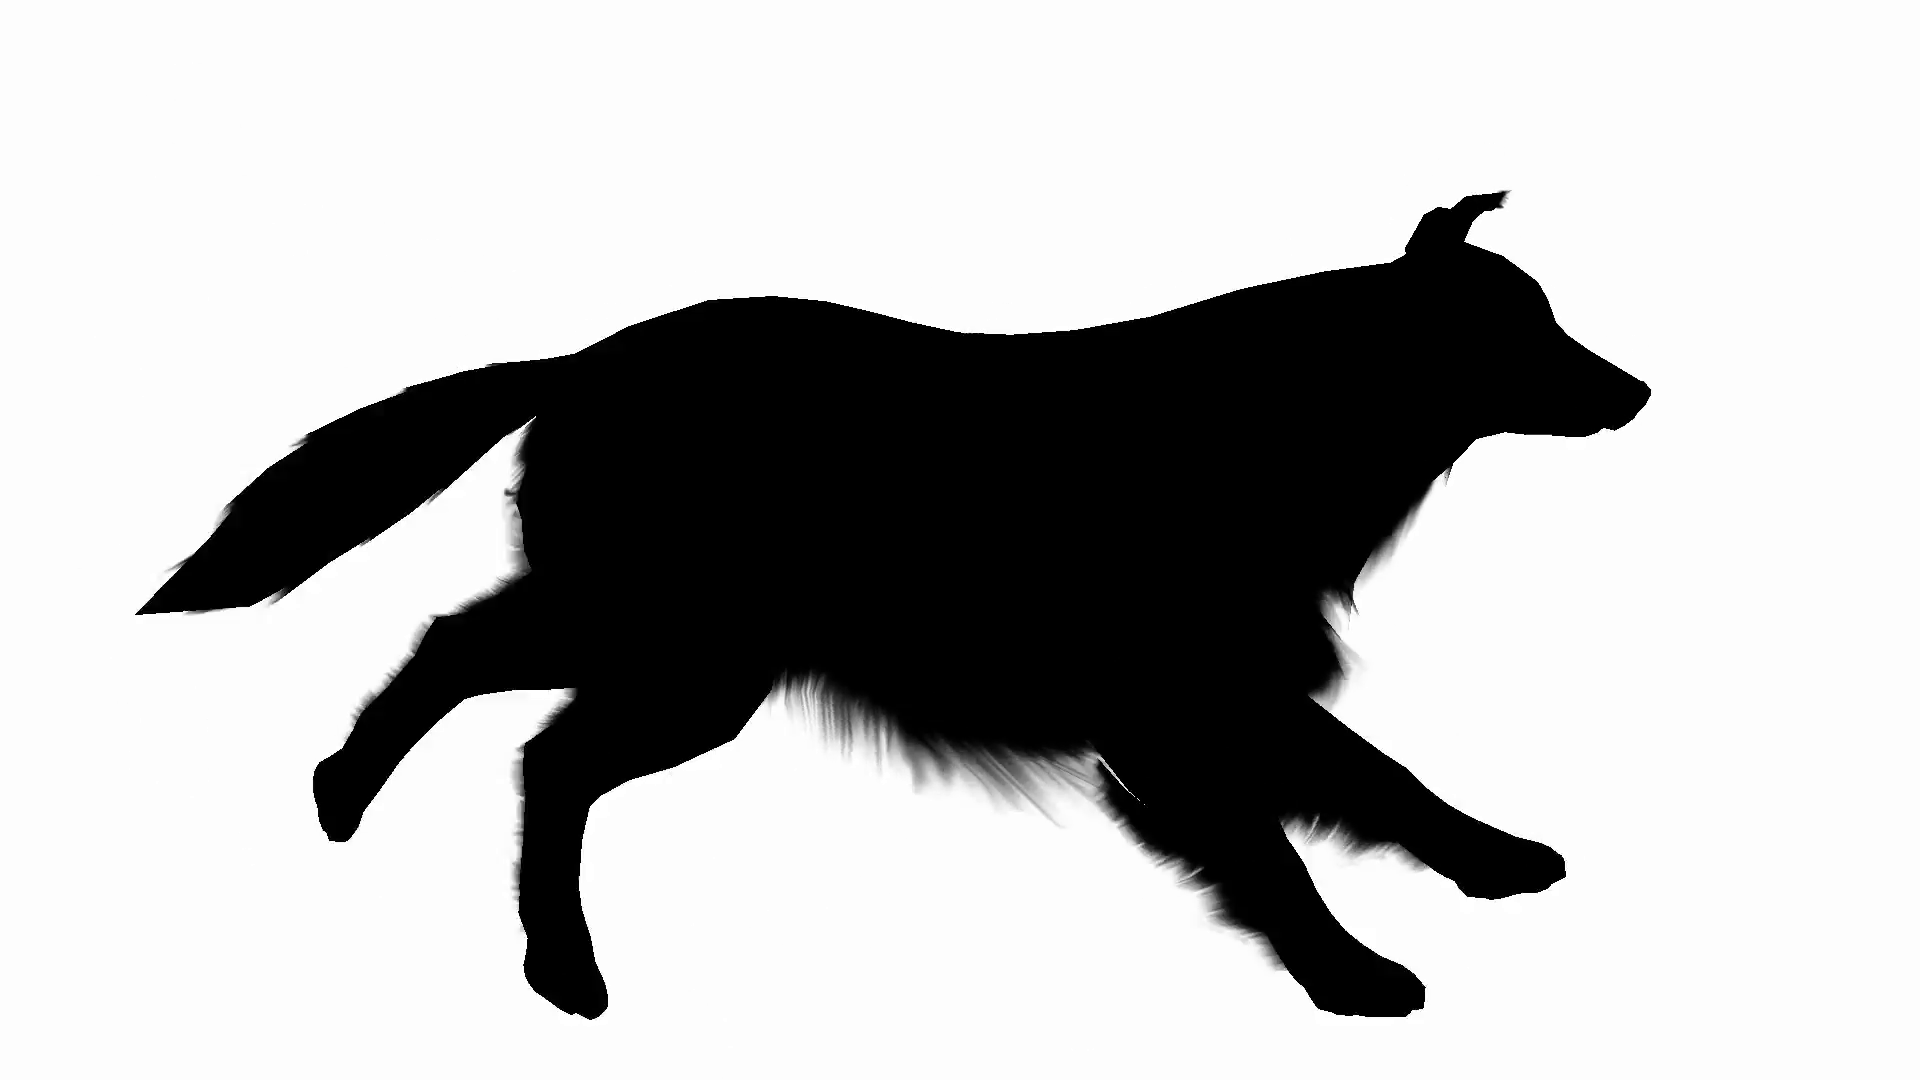 1920x1080 Profile Of Dog Running In Silhouette Motion Background